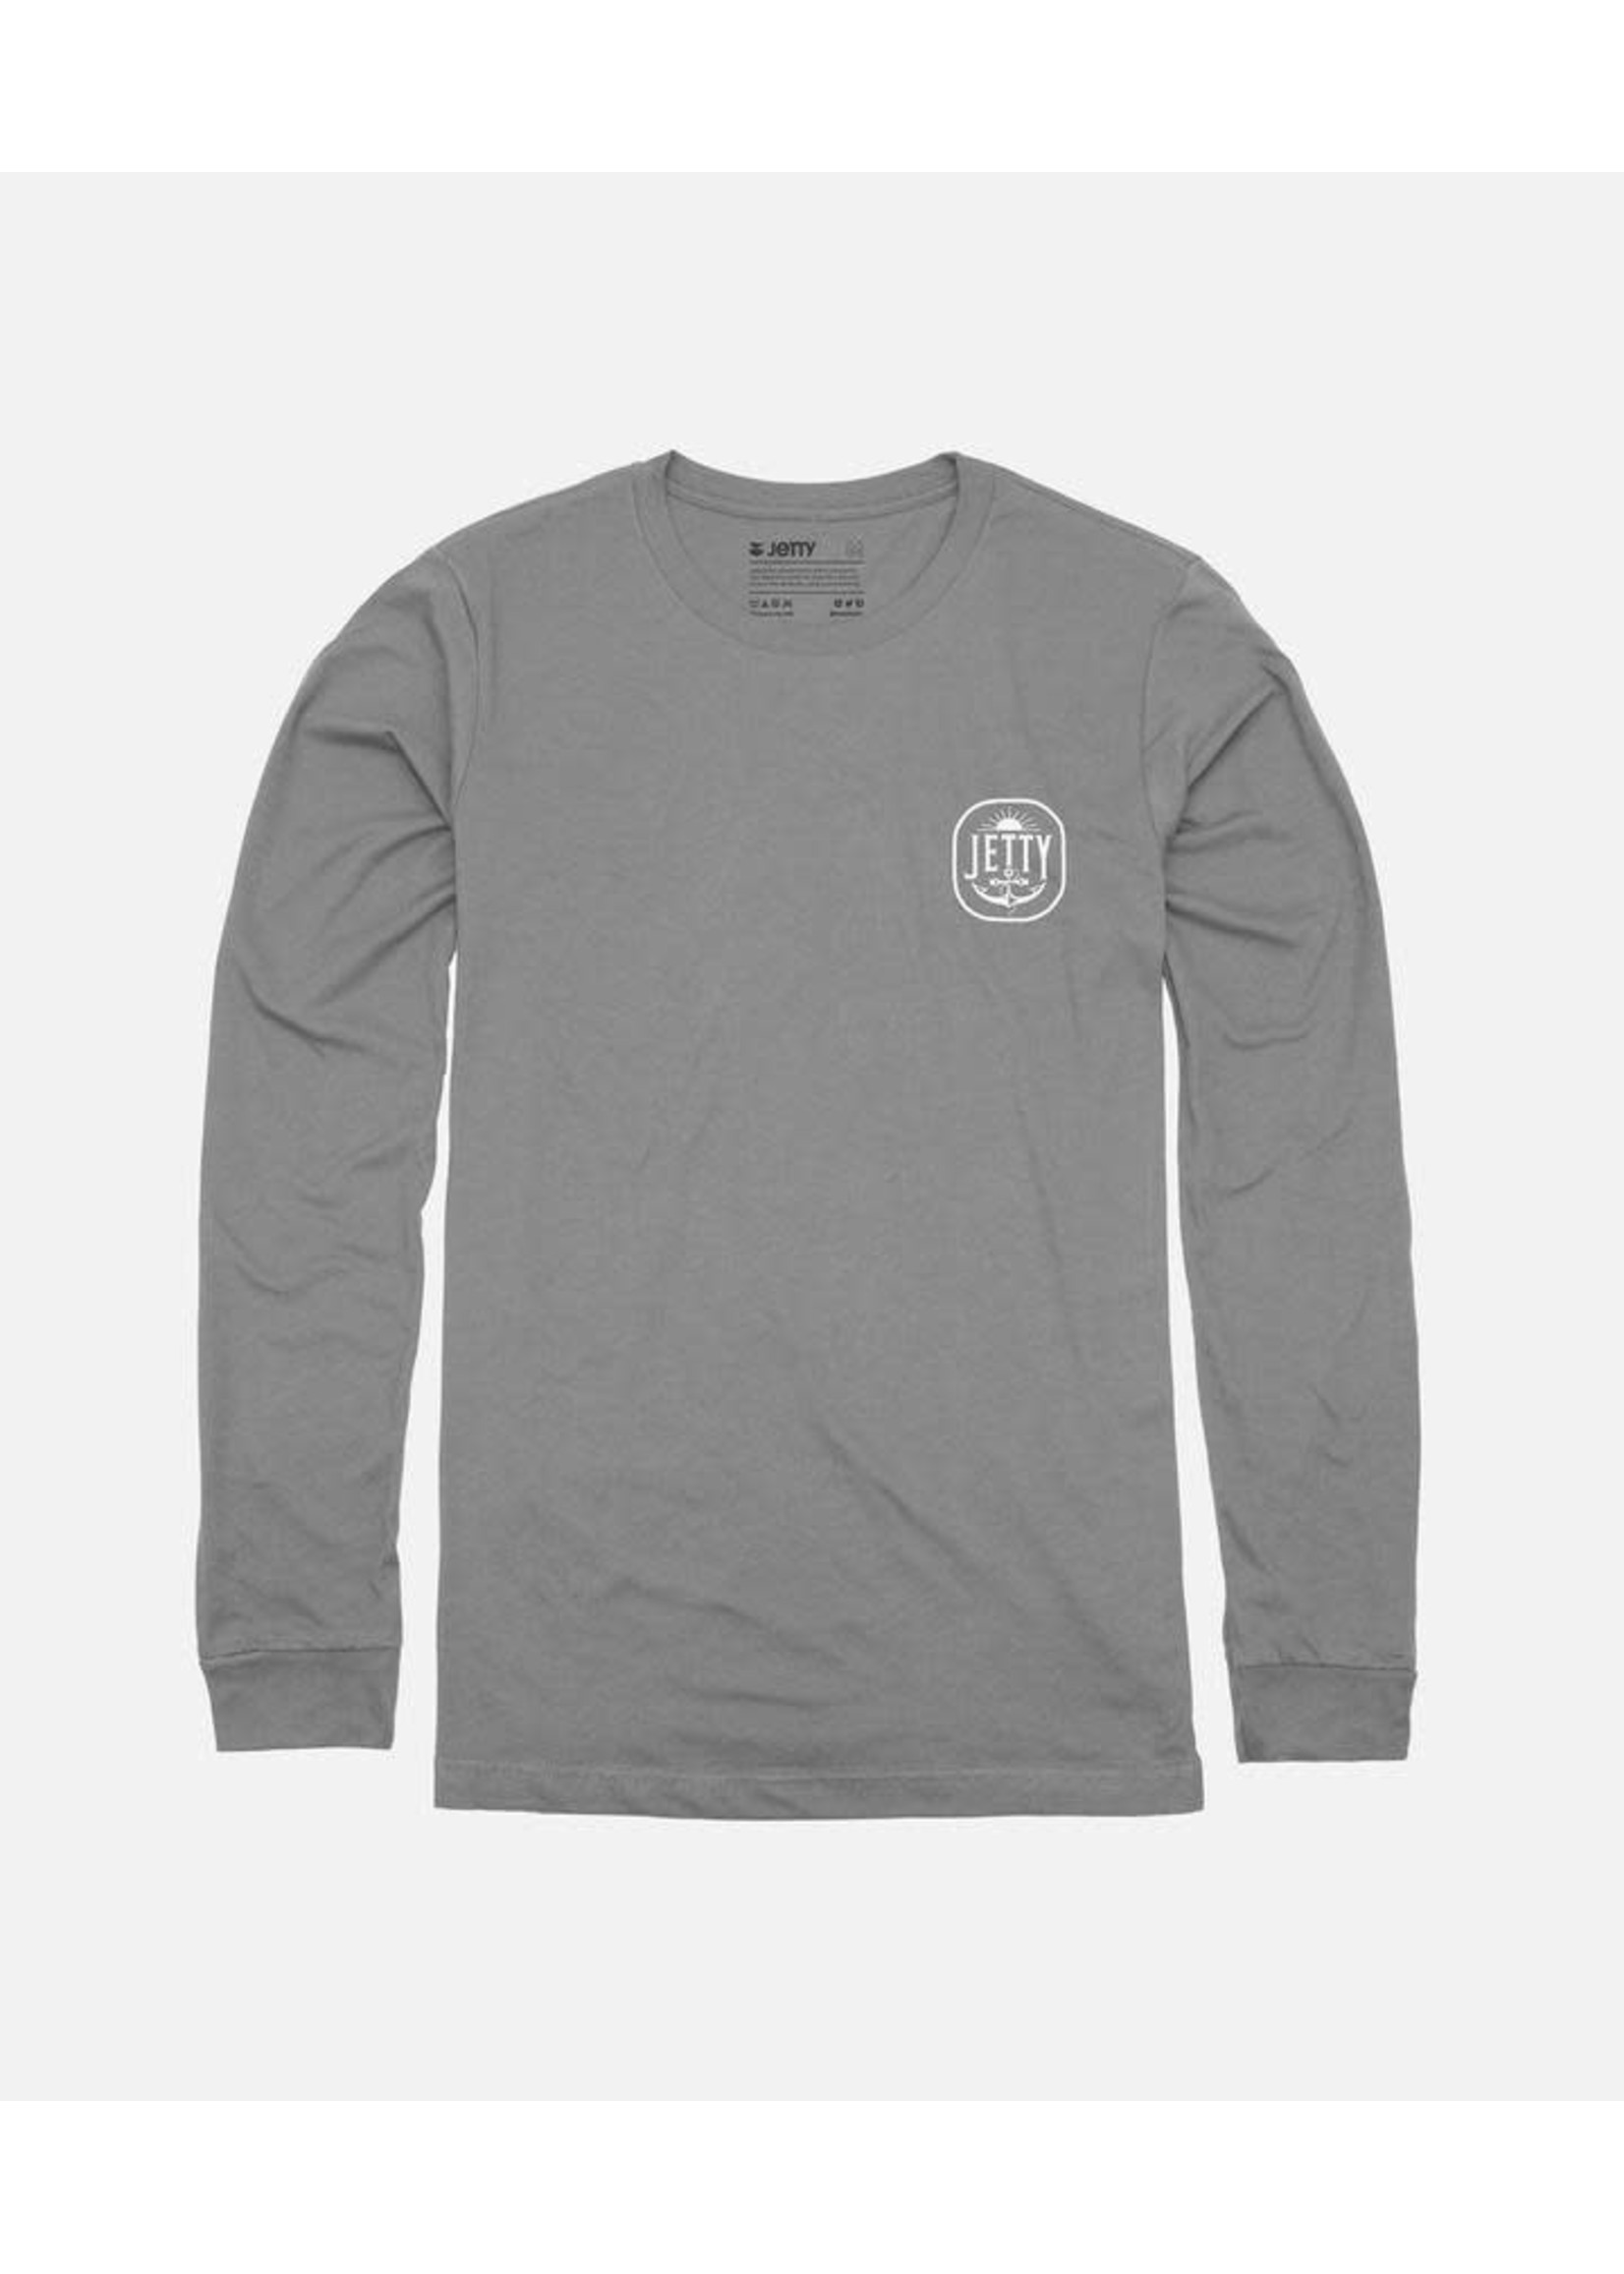 Jetty Admiralty L/S Tee